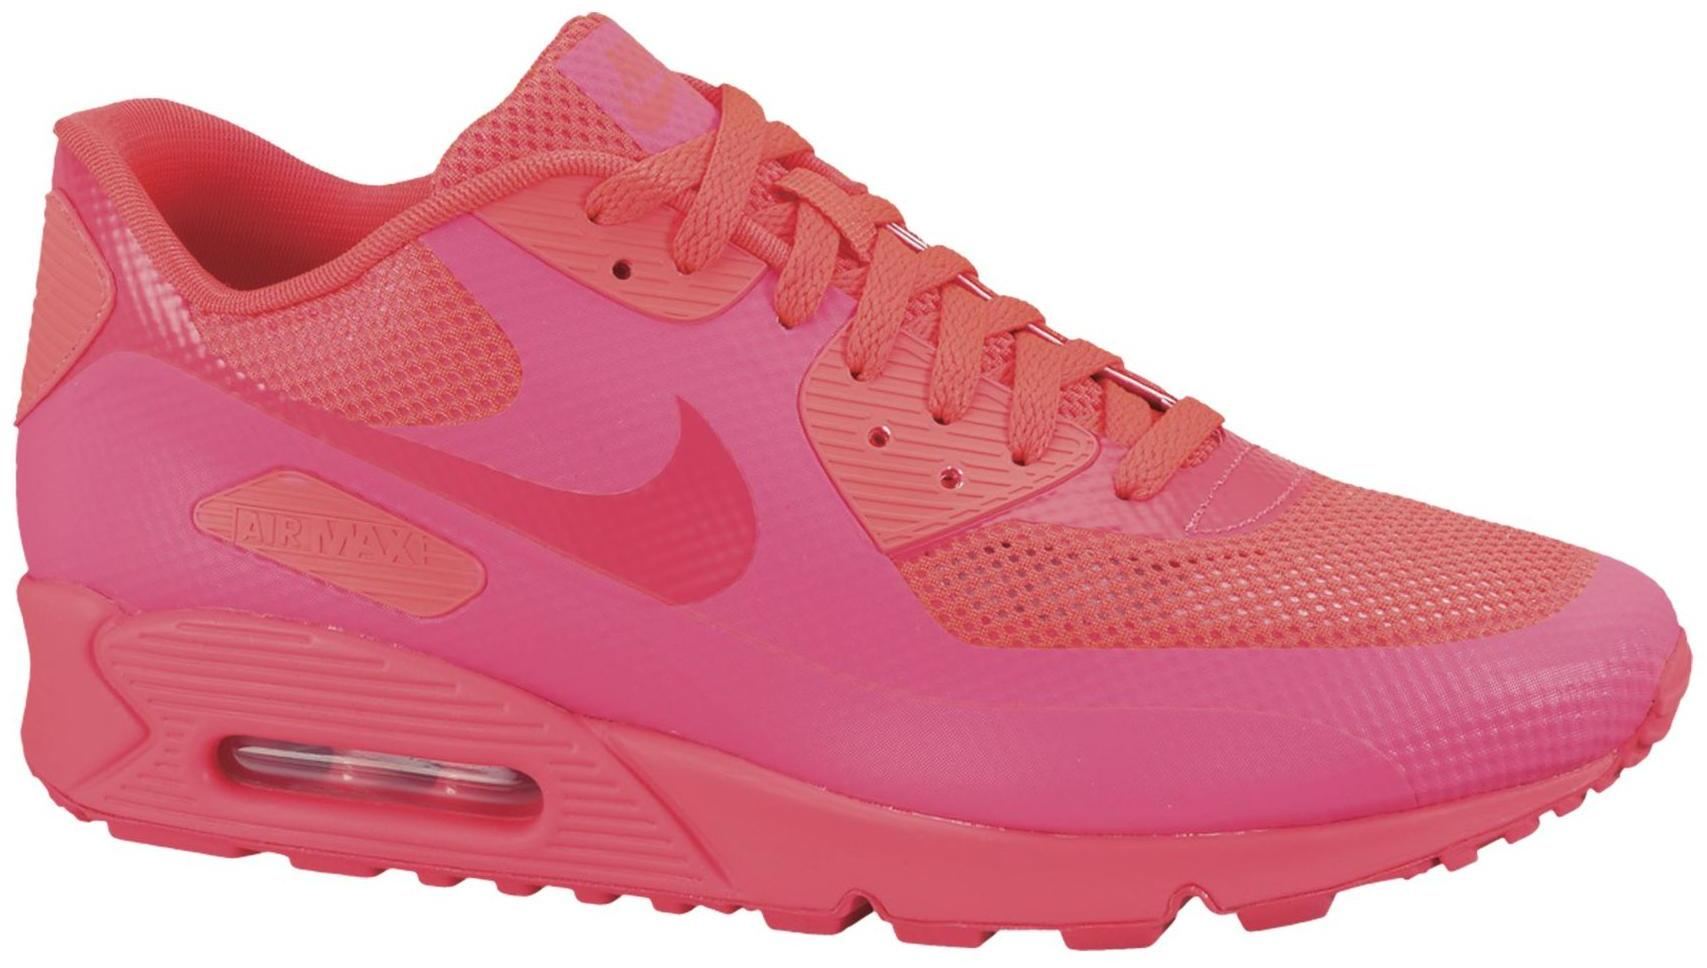 Nike Air Max 90 Hyperfuse Solar Red - 454446-600